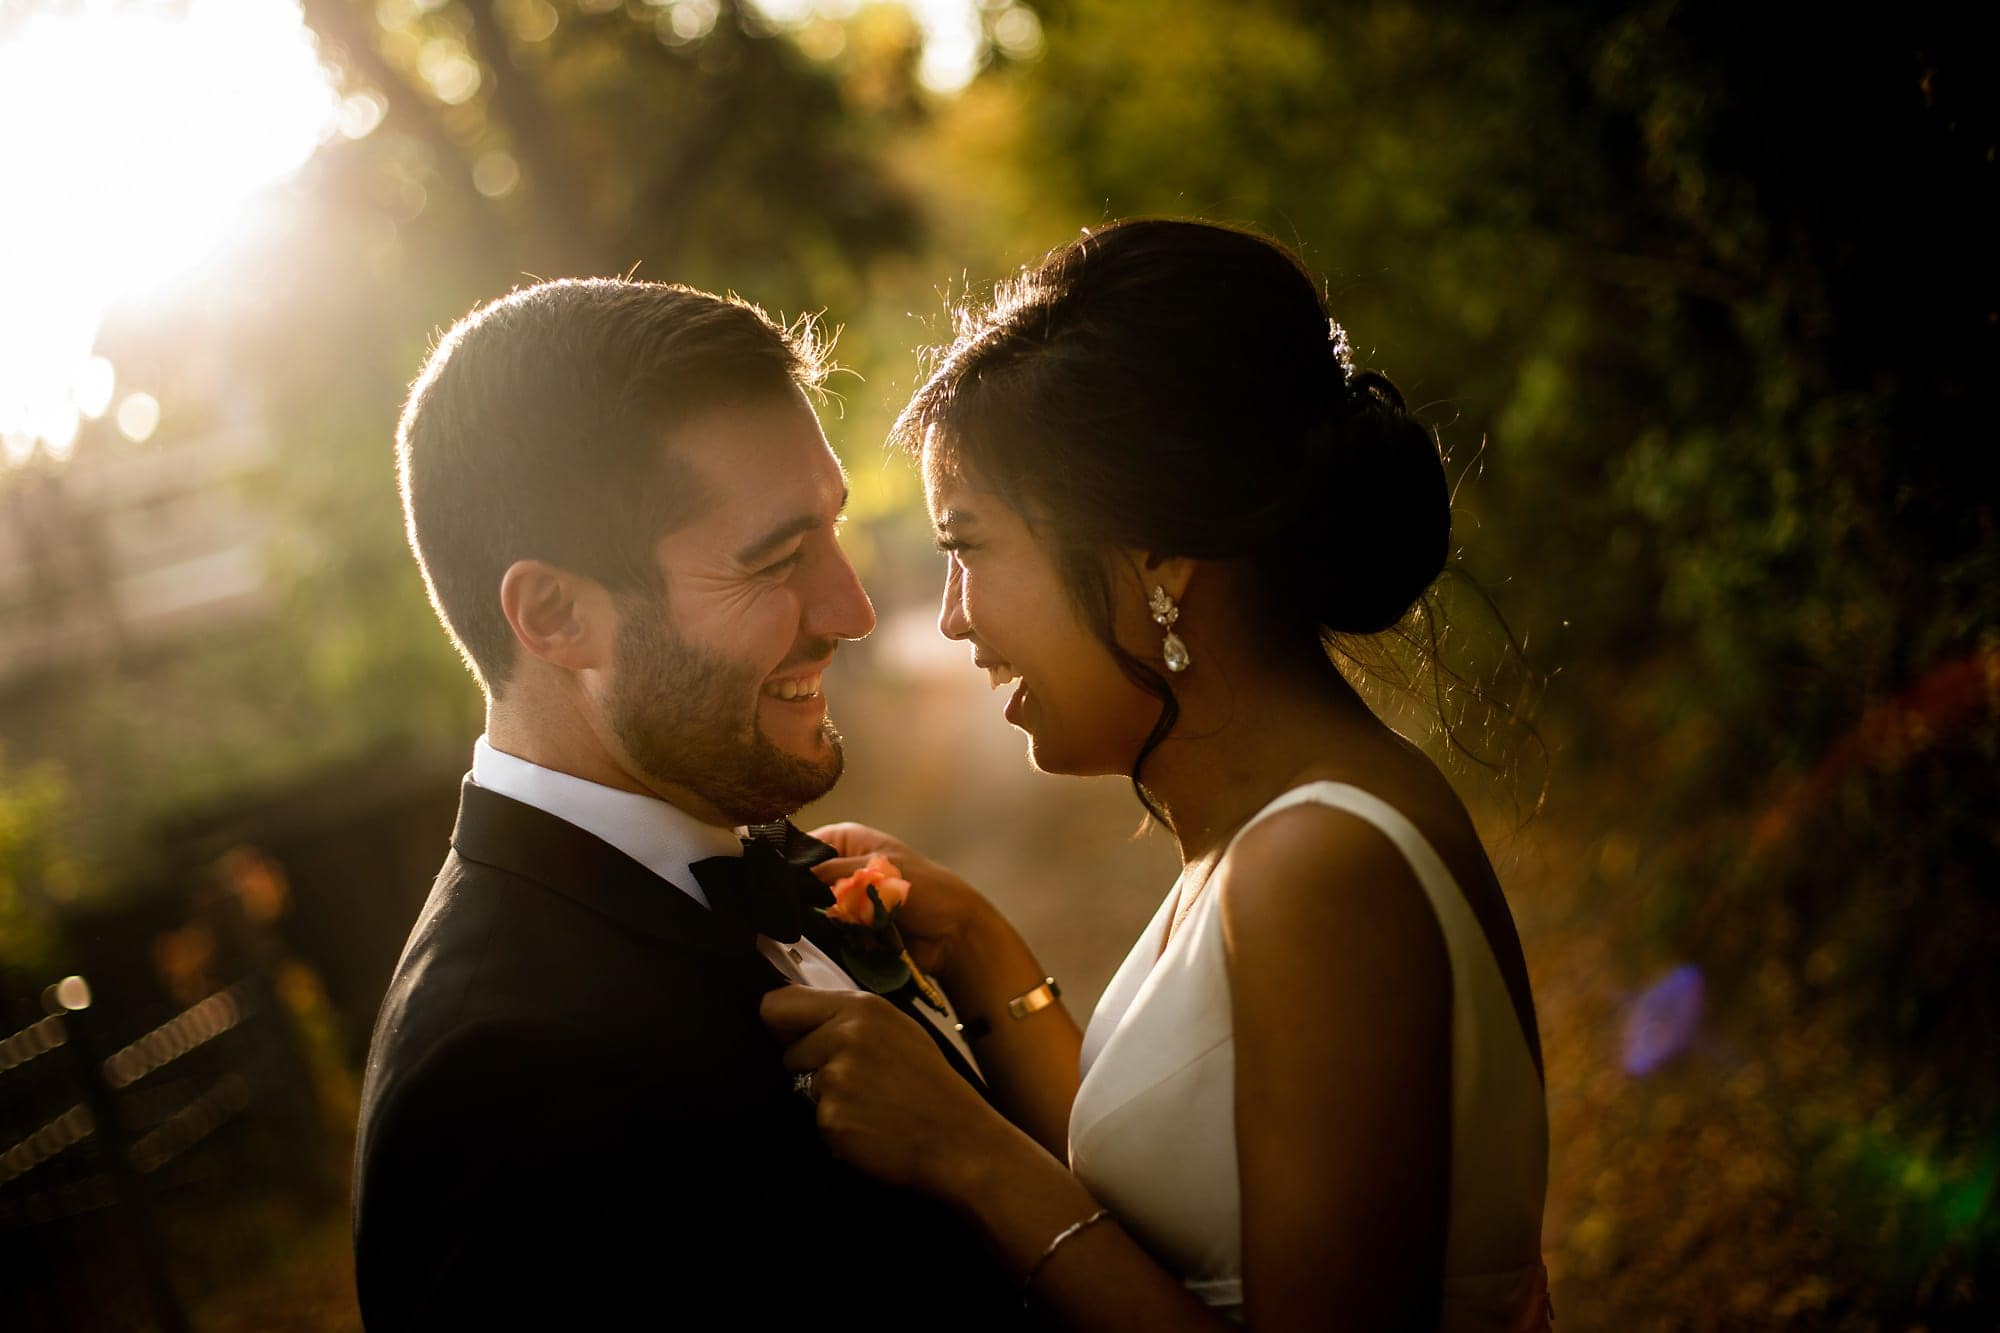 Bryan and Megan share a moment together in the last light following their fall wedding